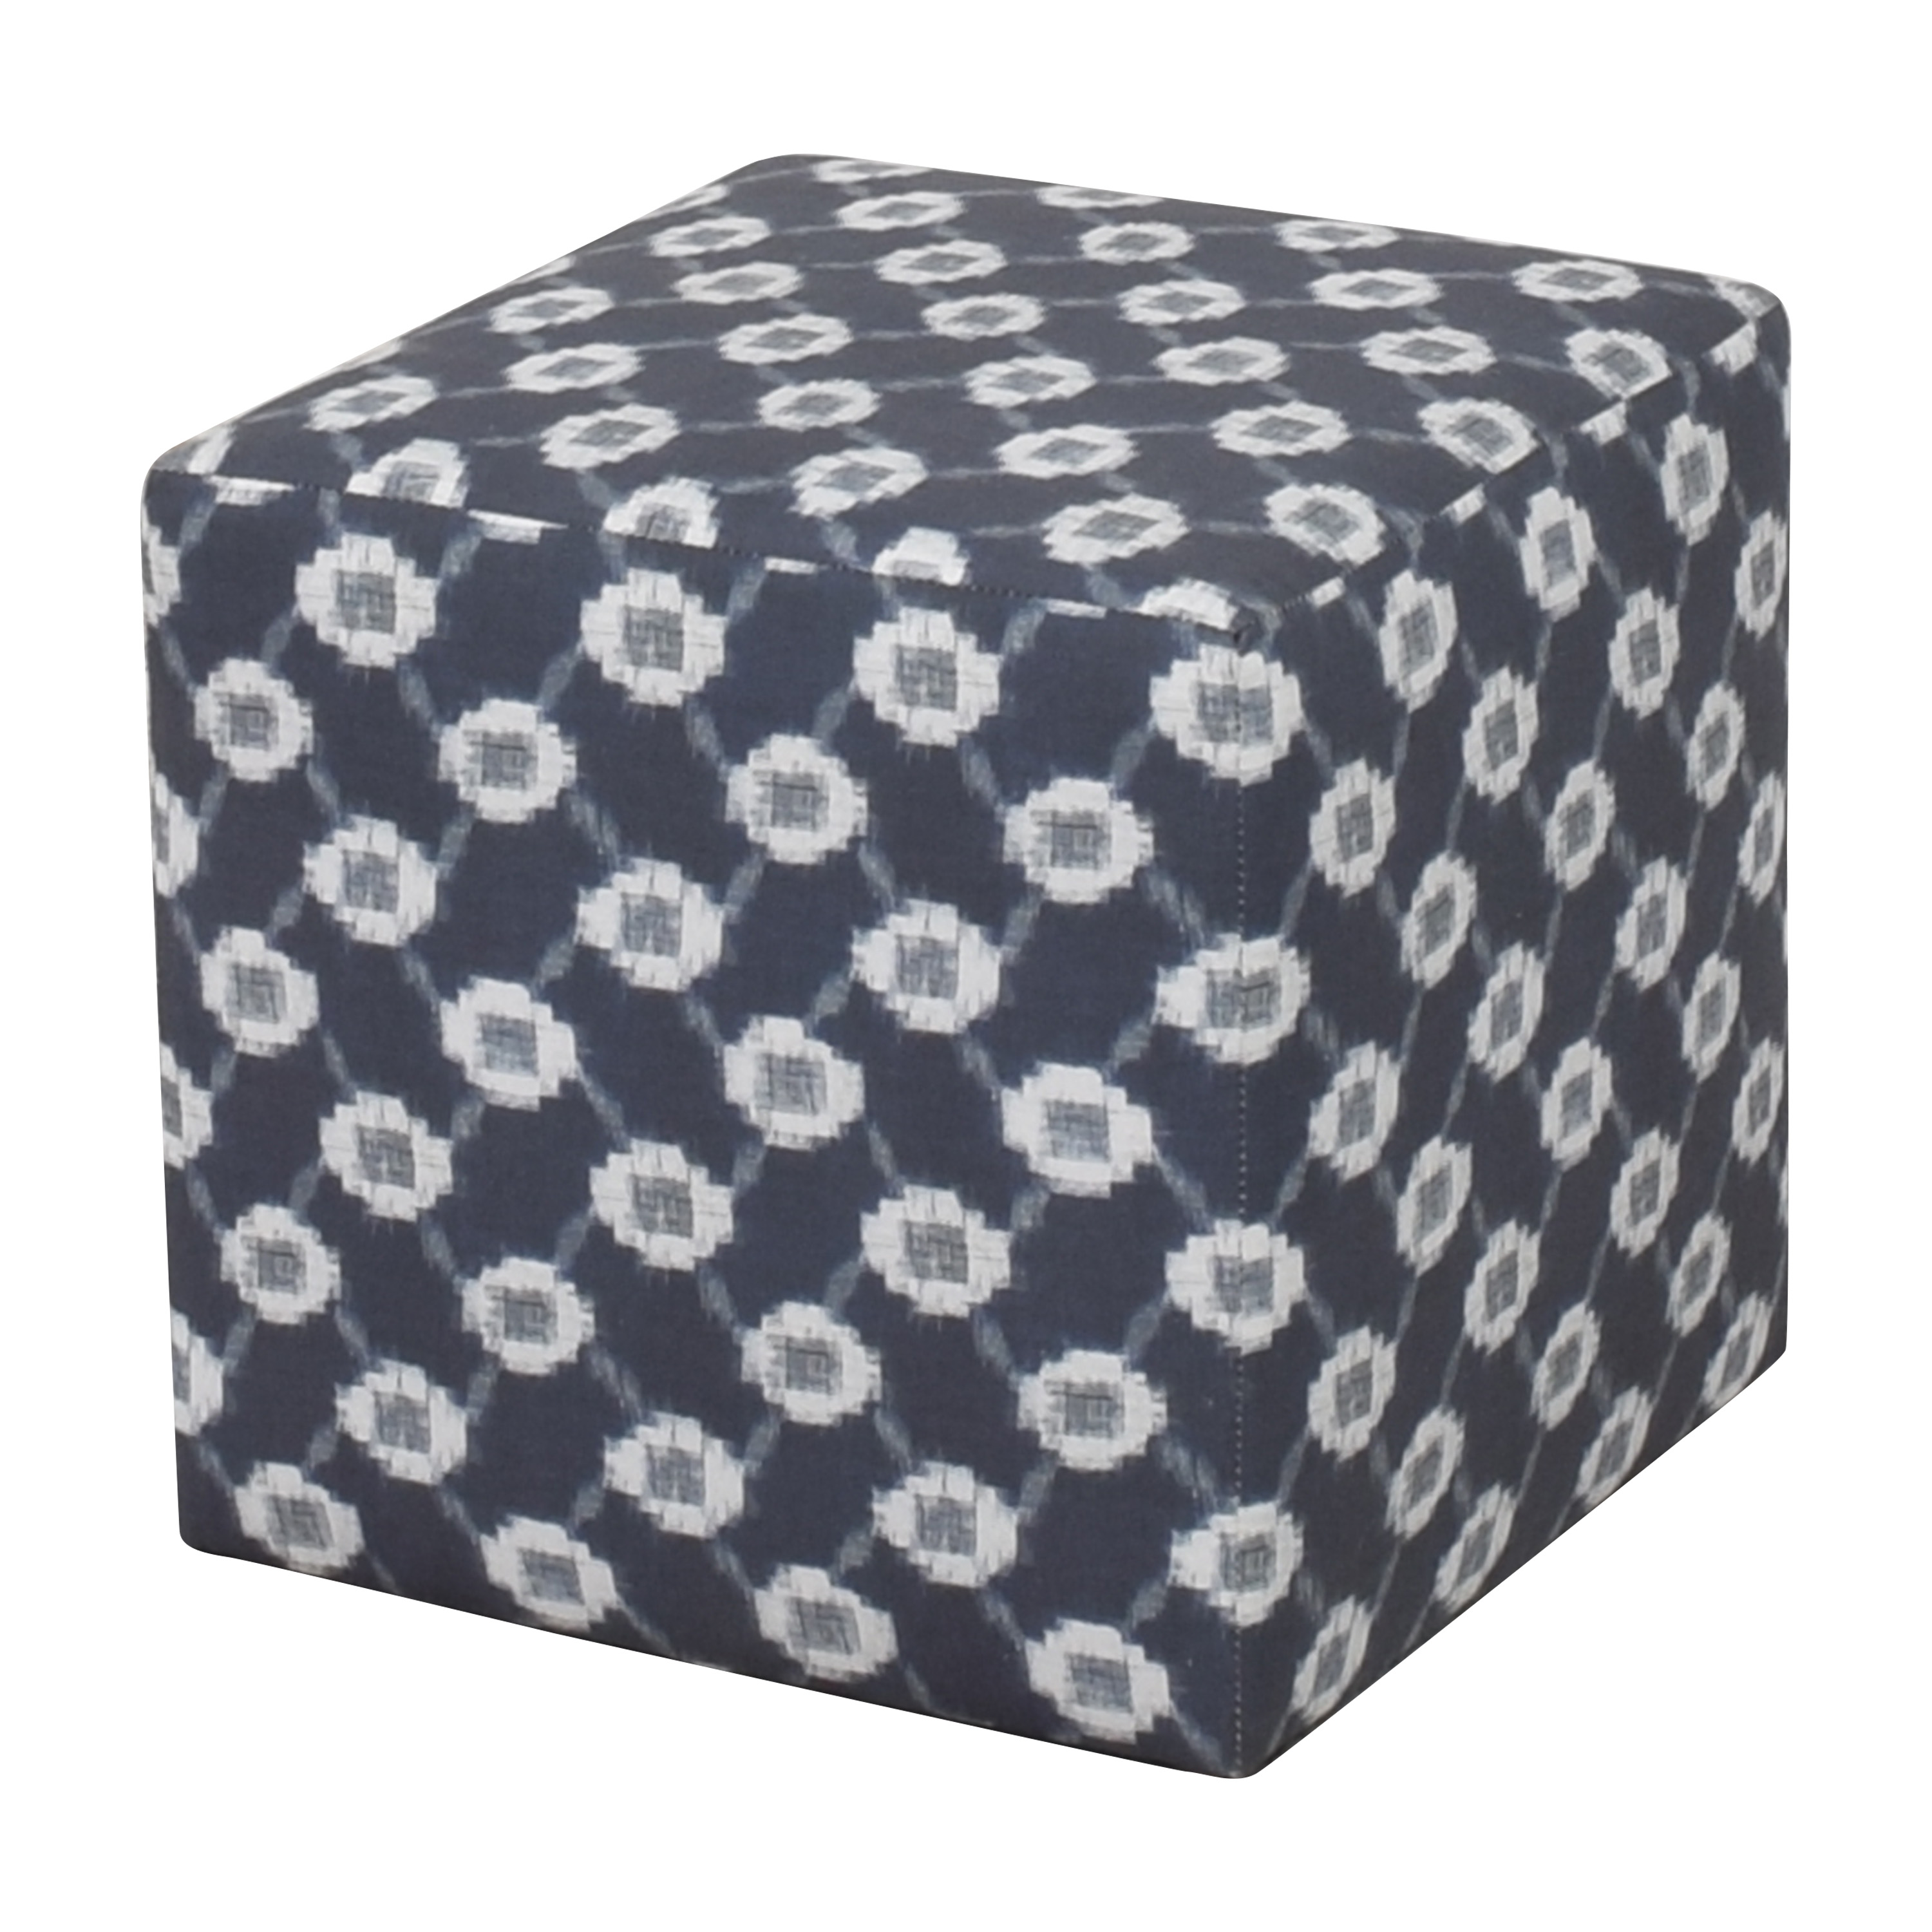 The Inside Cube Ottoman The Inside